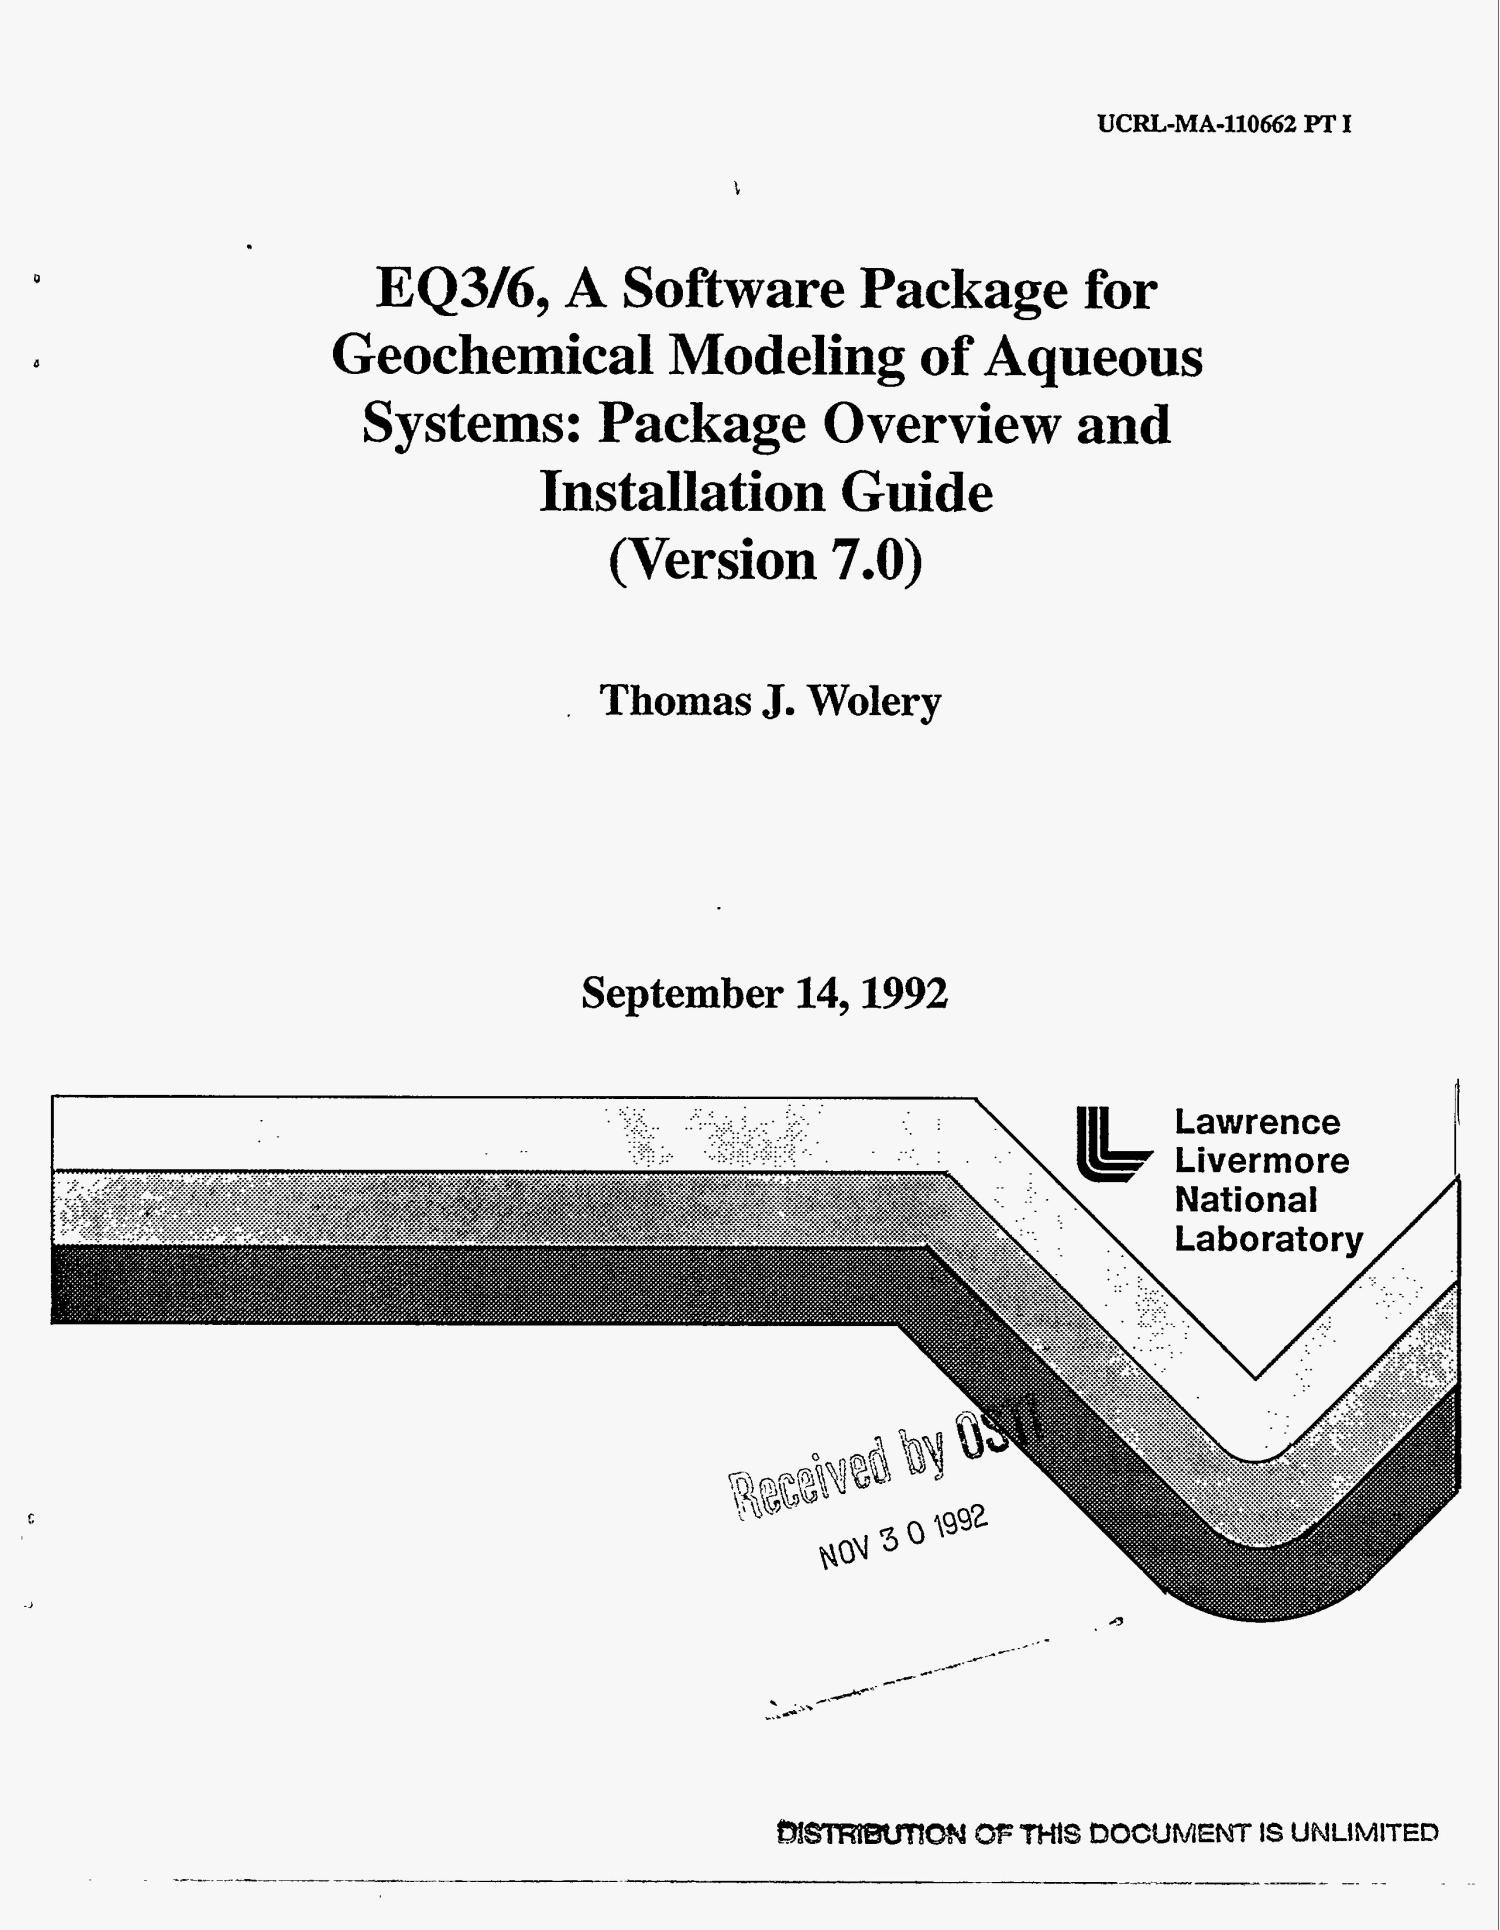 EQ3/6, a software package for geochemical modeling of aqueous systems: Package overview and installation guide (Version 7.0)                                                                                                      [Sequence #]: 1 of 74